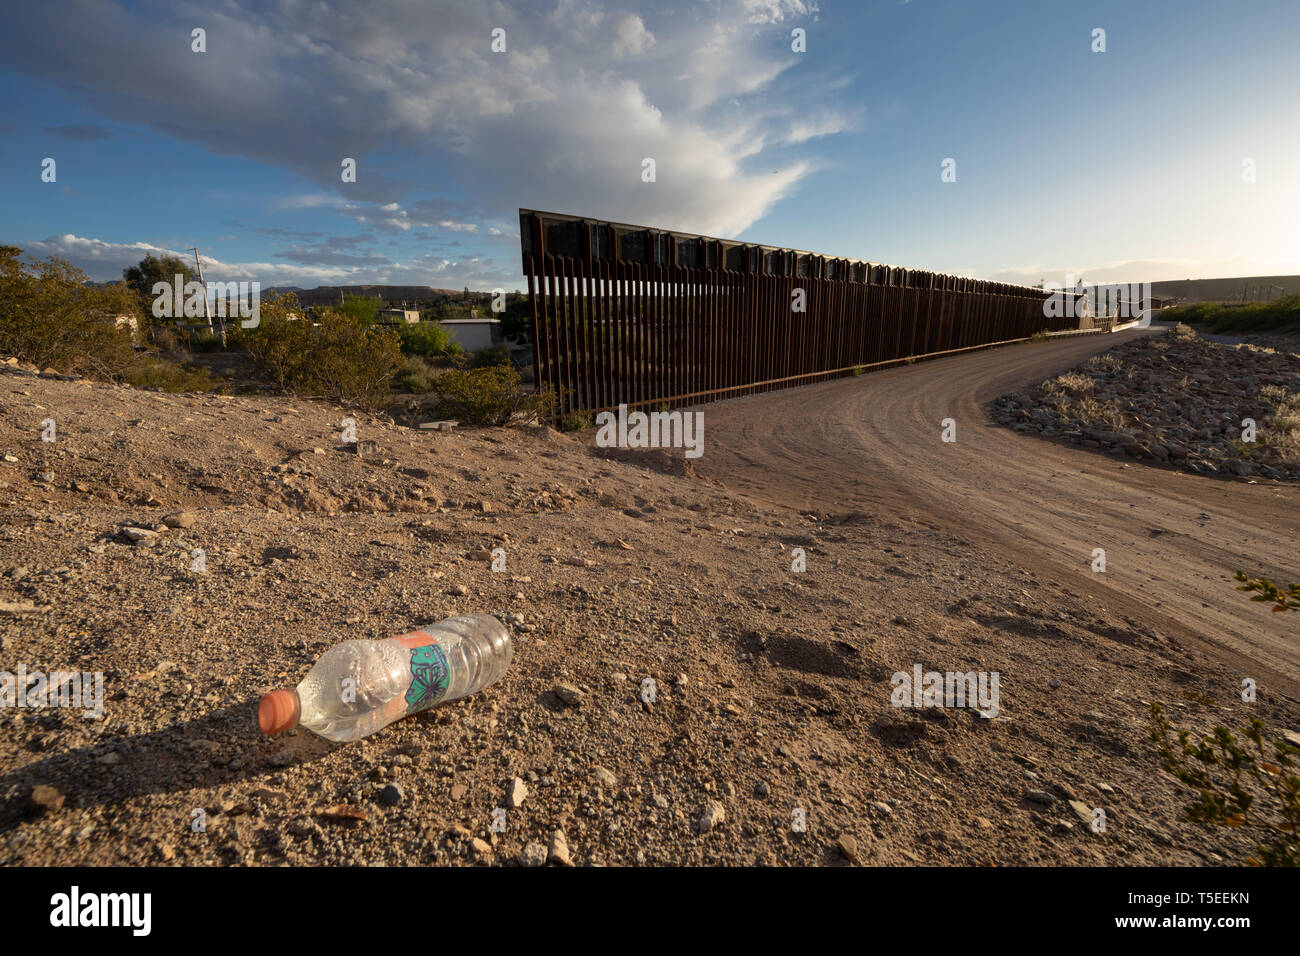 Discarded Water Bottle at the Anapra Gap, a popular crossing point for migrants along the US-Mexico Border near El Paso, Texas Stock Photo